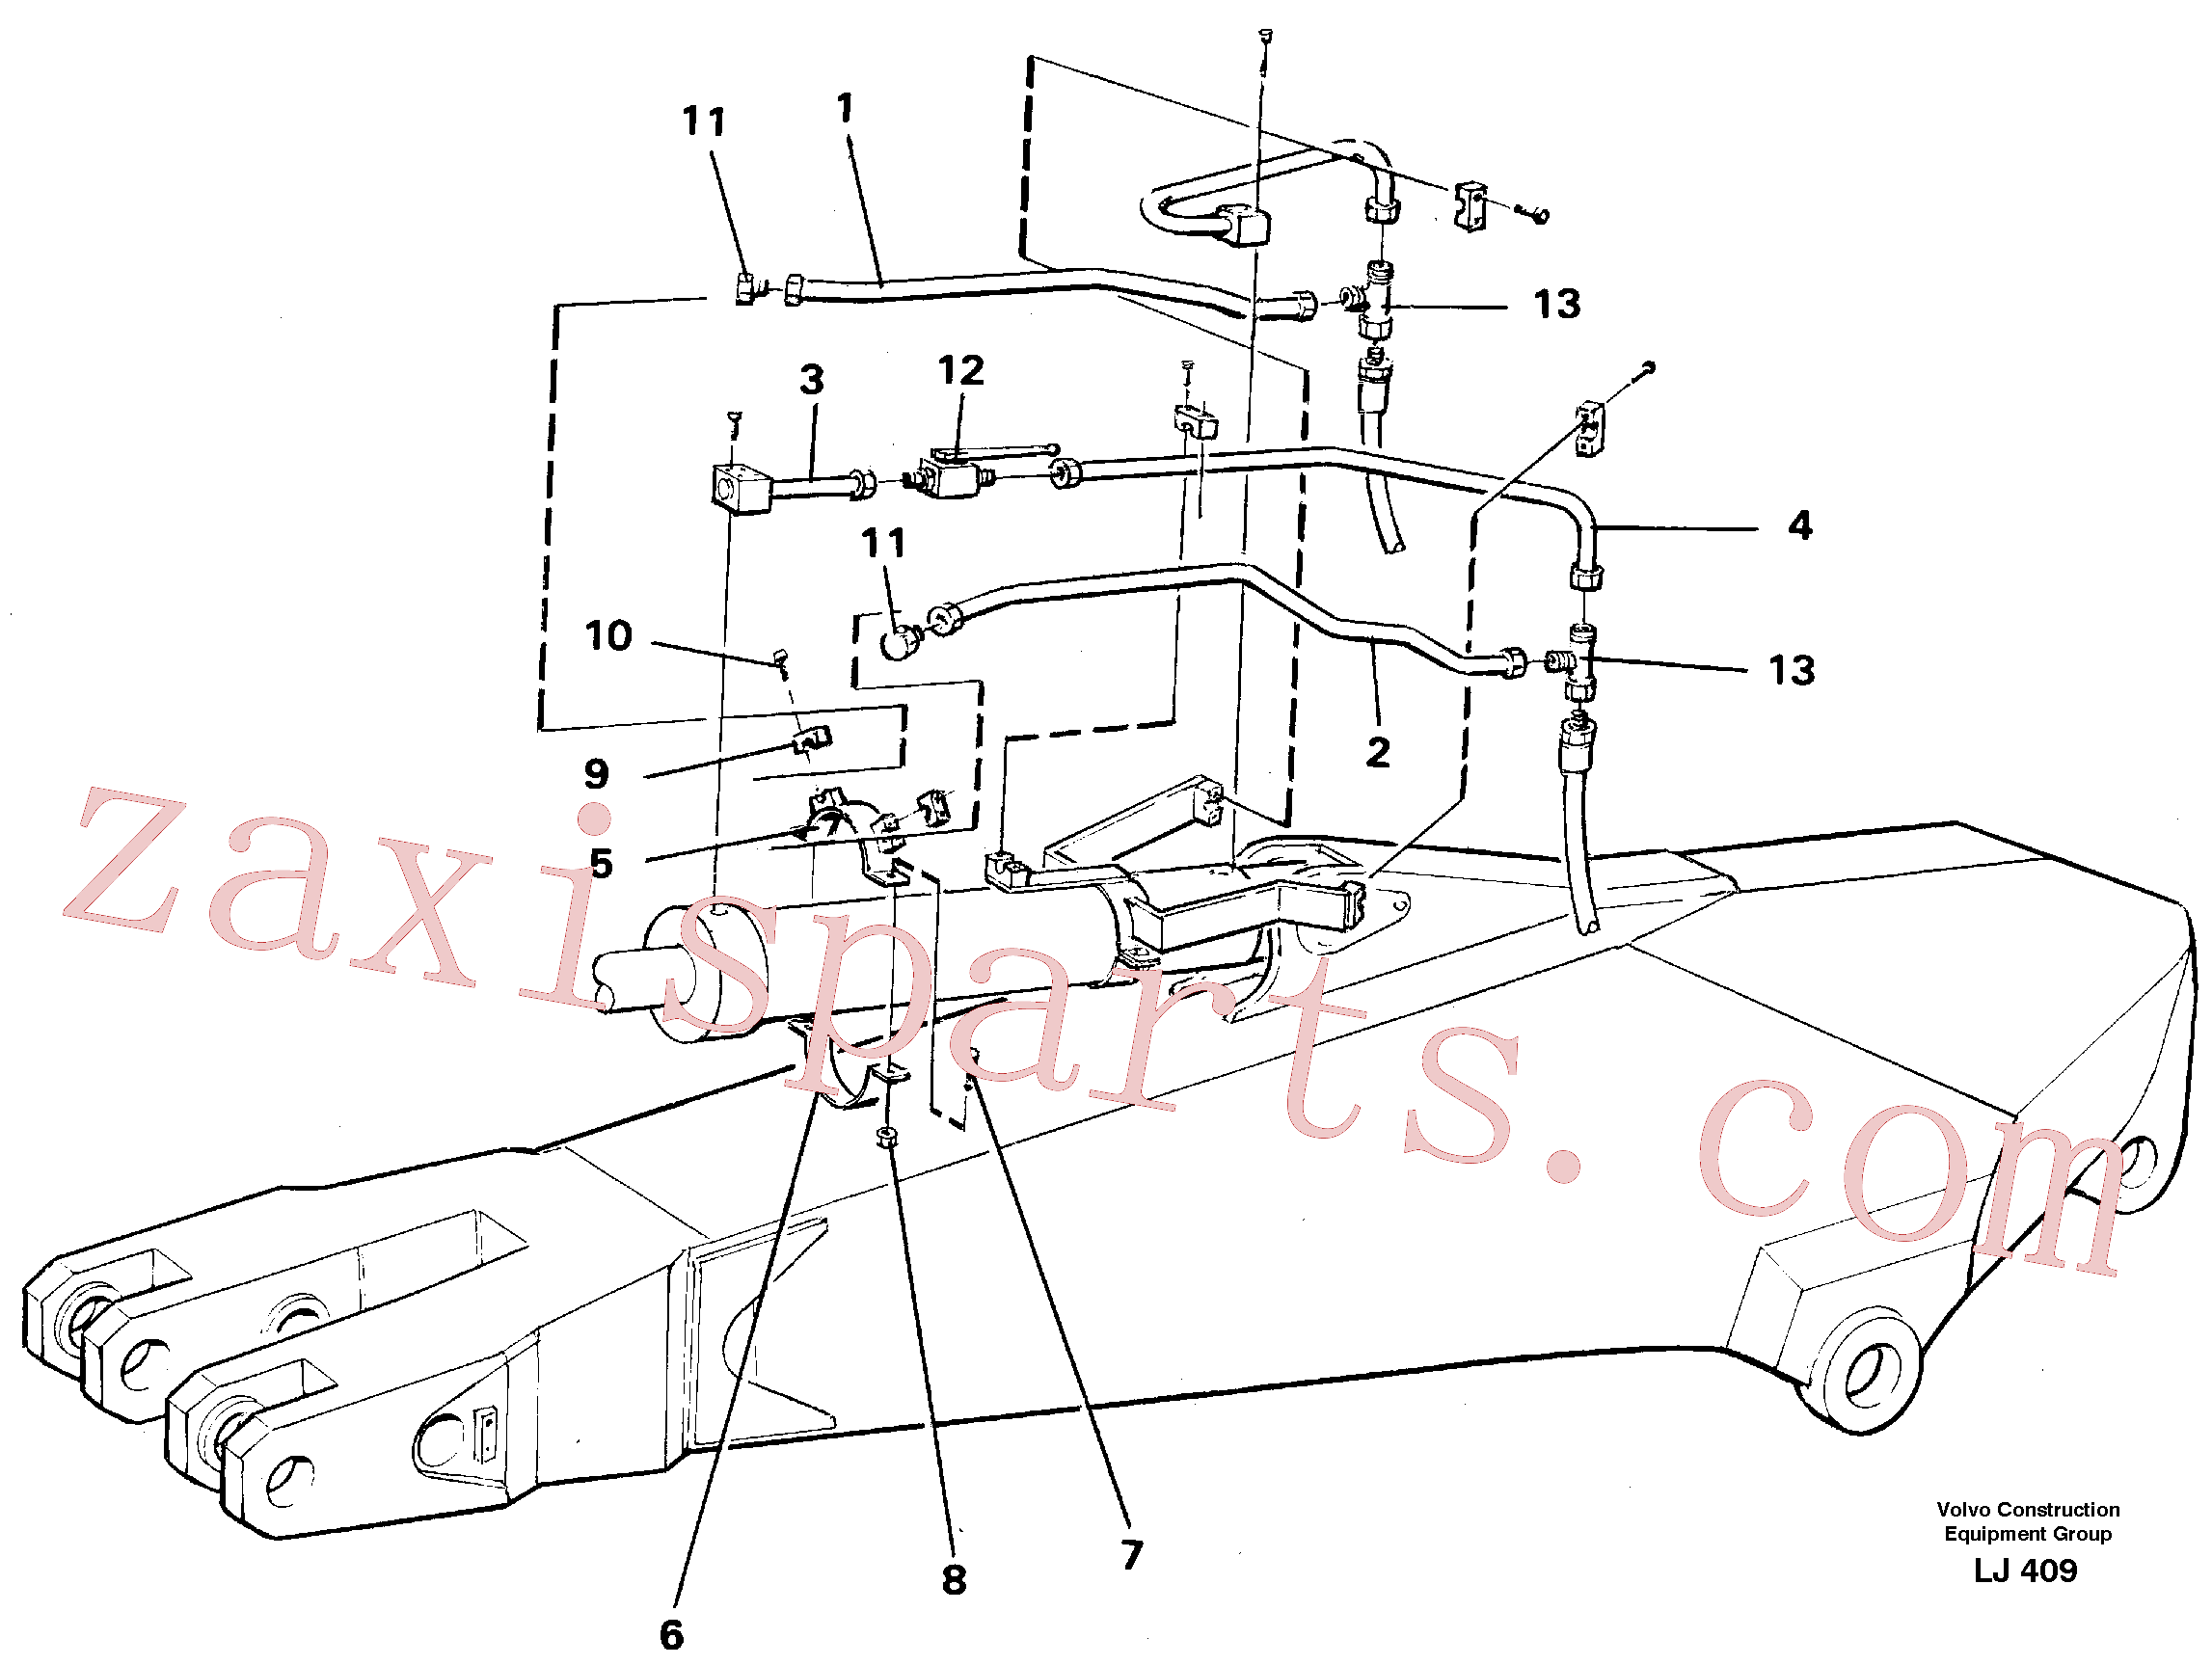 VOE14249977 for Volvo Parallel connected grab hydraulics on dipper arm.(LJ409 assembly)